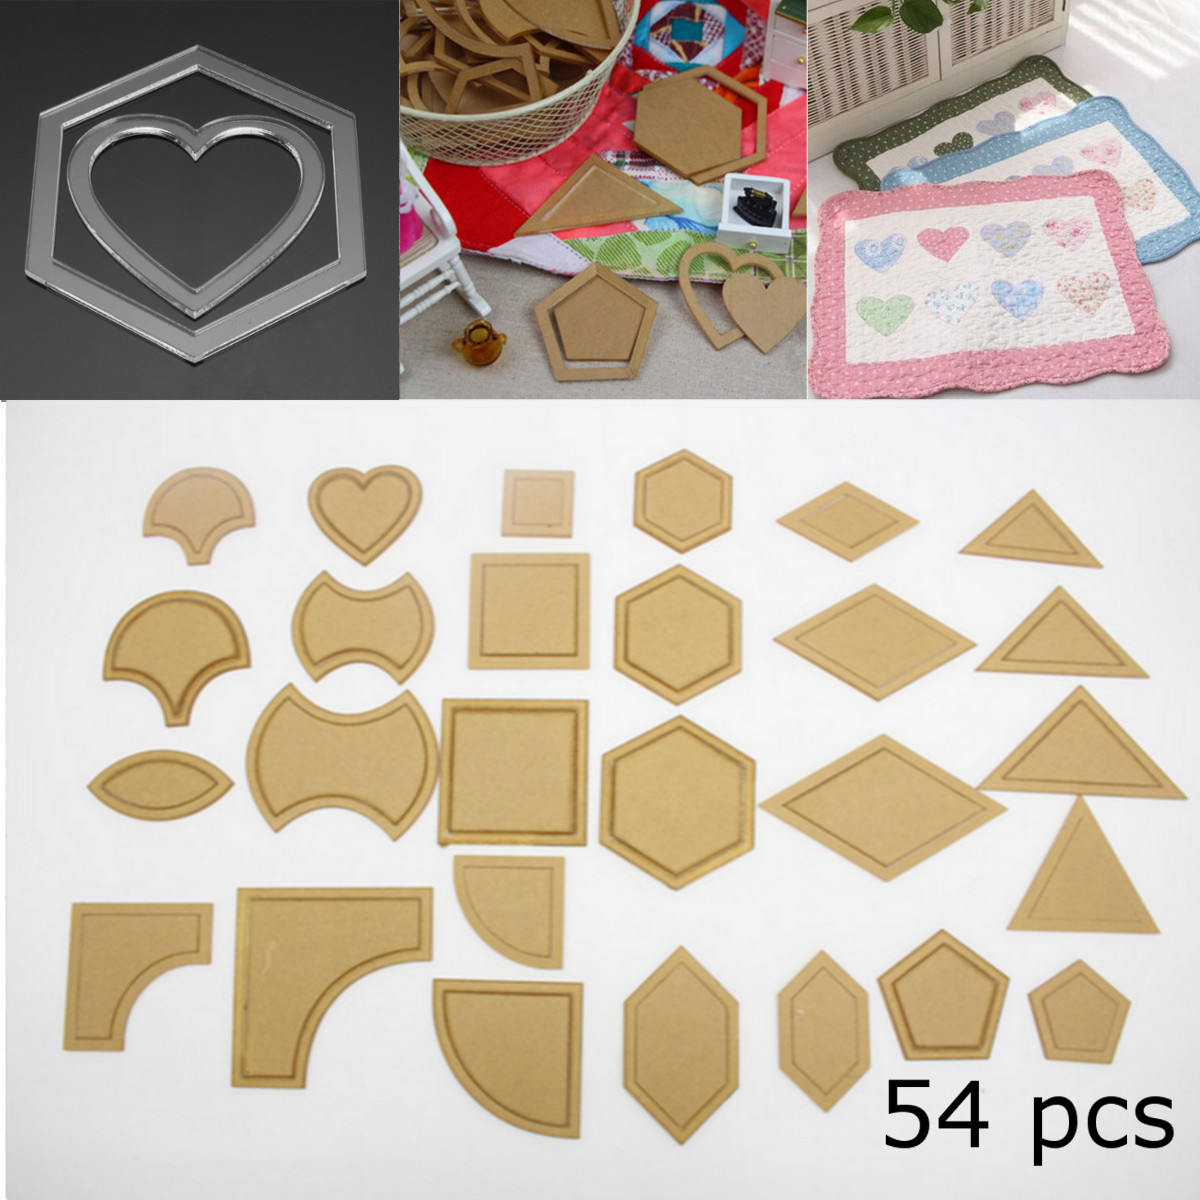 54pcs Acrylic Quilting Templates Multi Shapes Ruler DIY Sewing Tool for Patchwork Craft